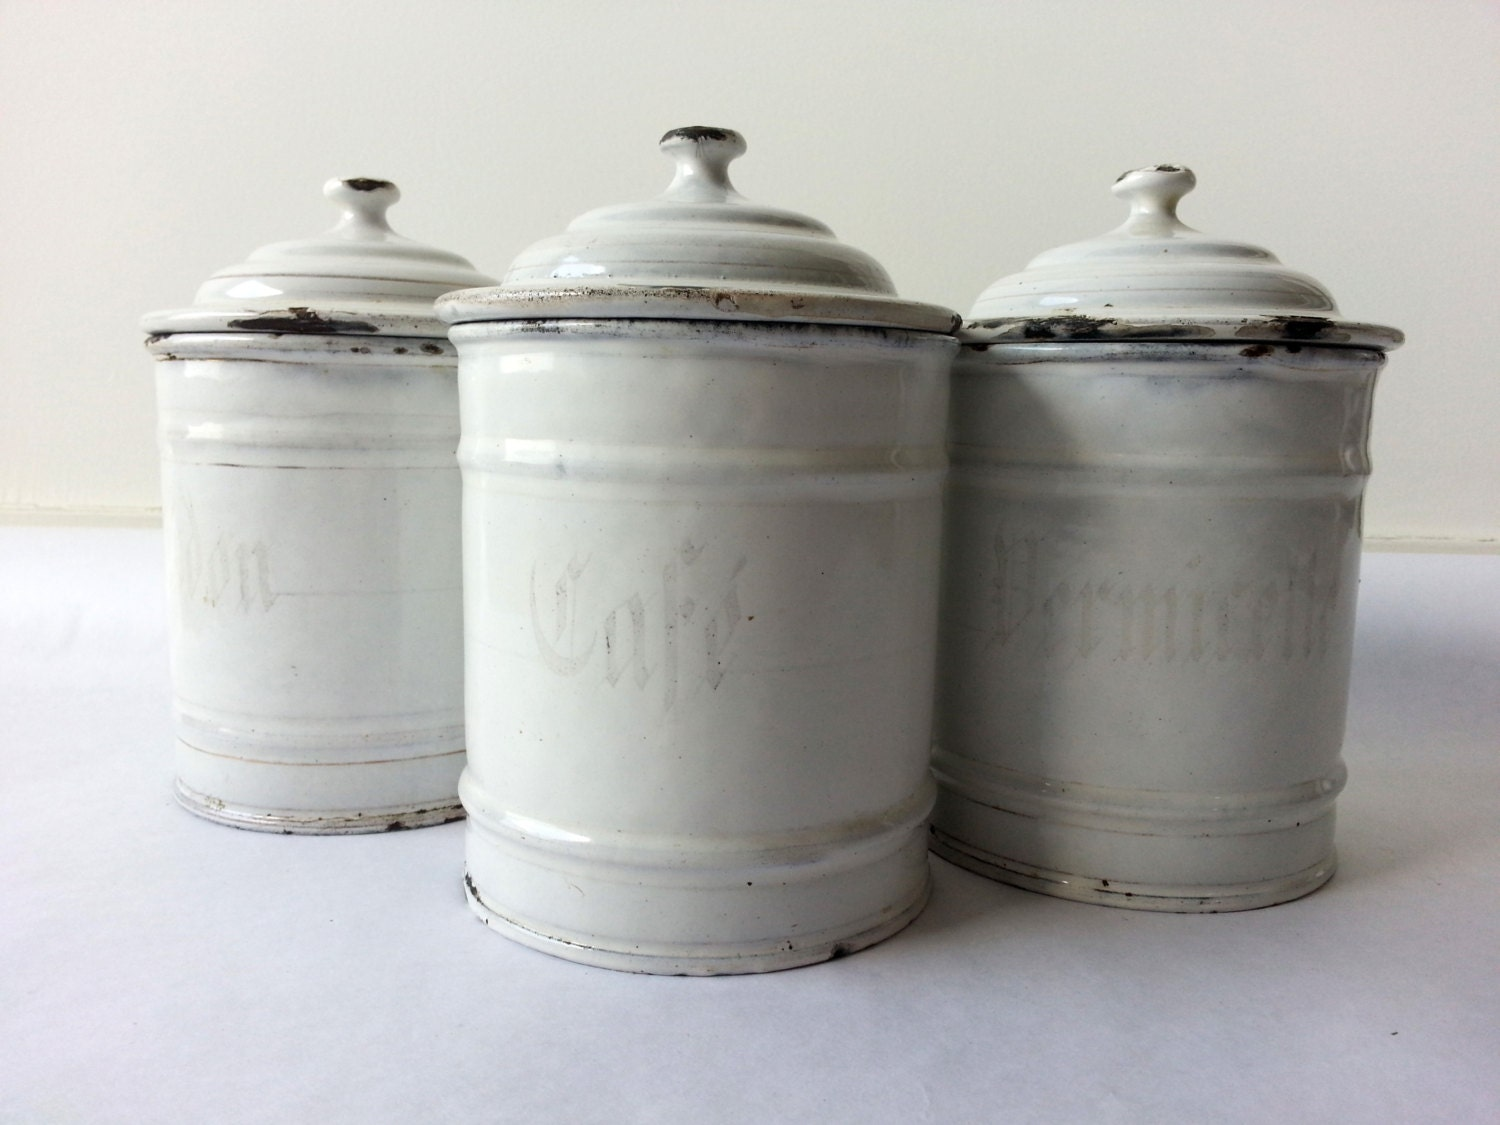 1930 s french kitchen white canisters set of 3 french white kitchen canister set uk choosing white kitchen